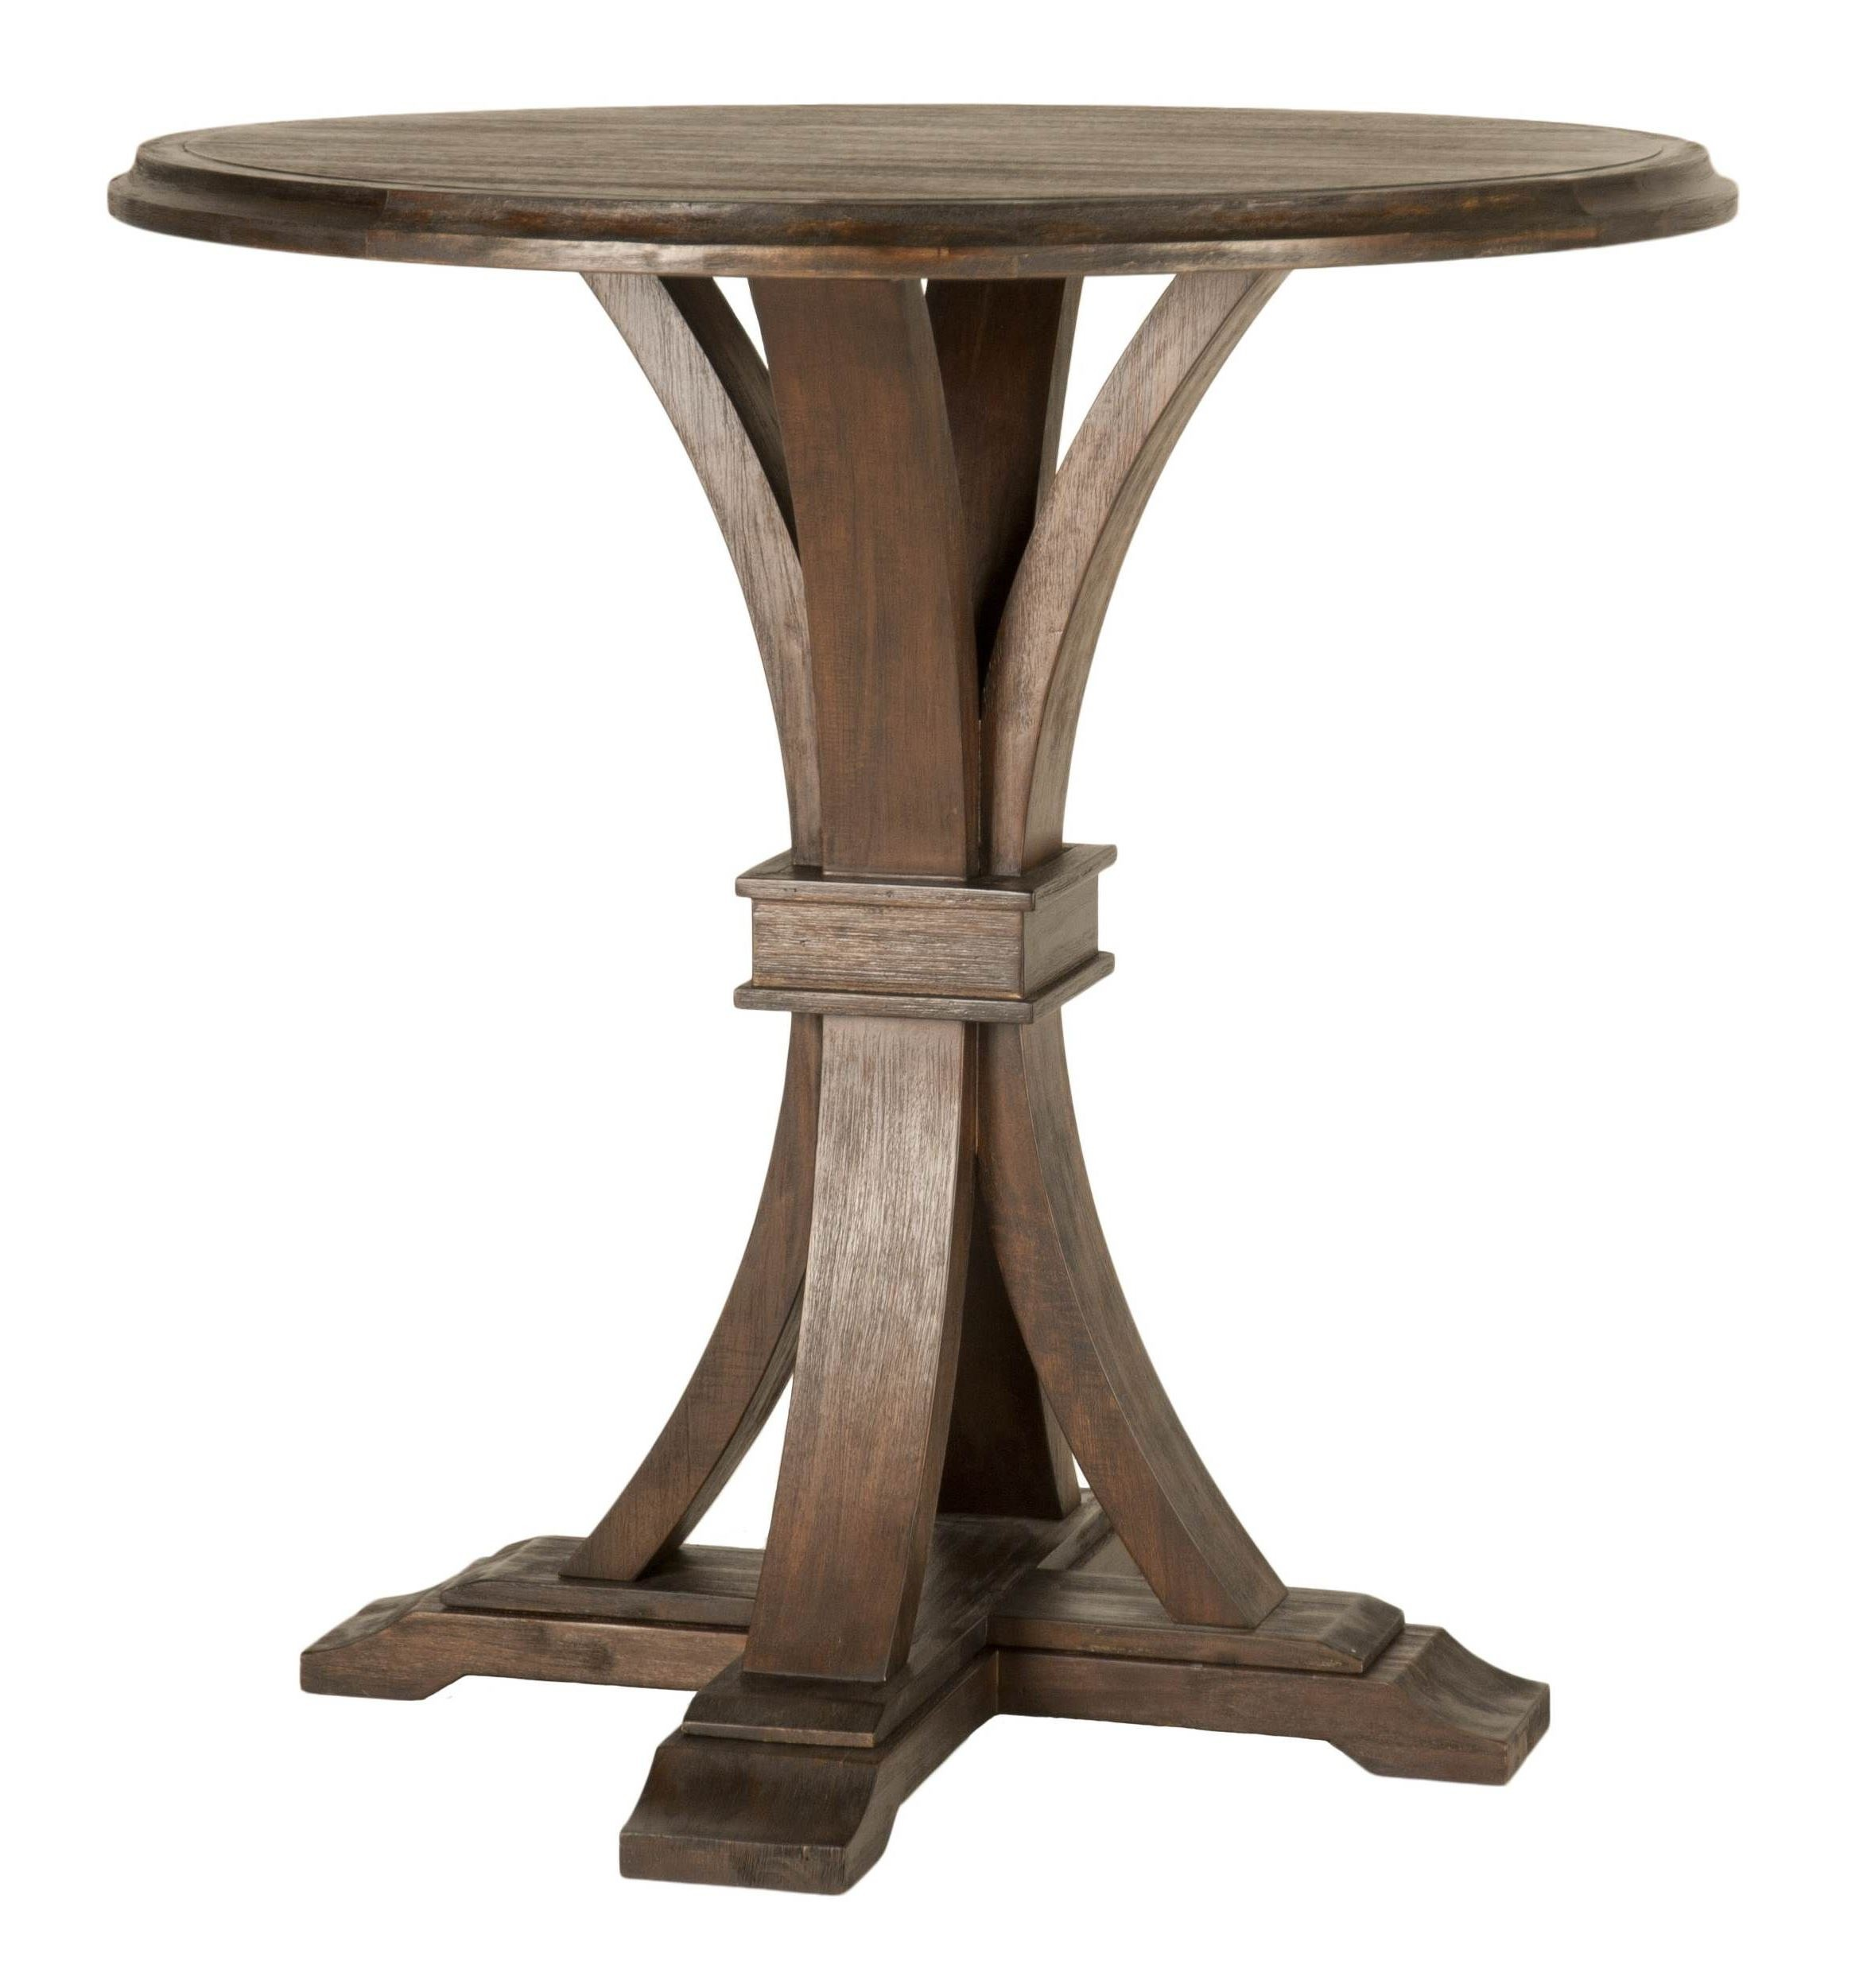 devon rustic java round bar height dining table from orient express 6069 rd rjav coleman. Black Bedroom Furniture Sets. Home Design Ideas